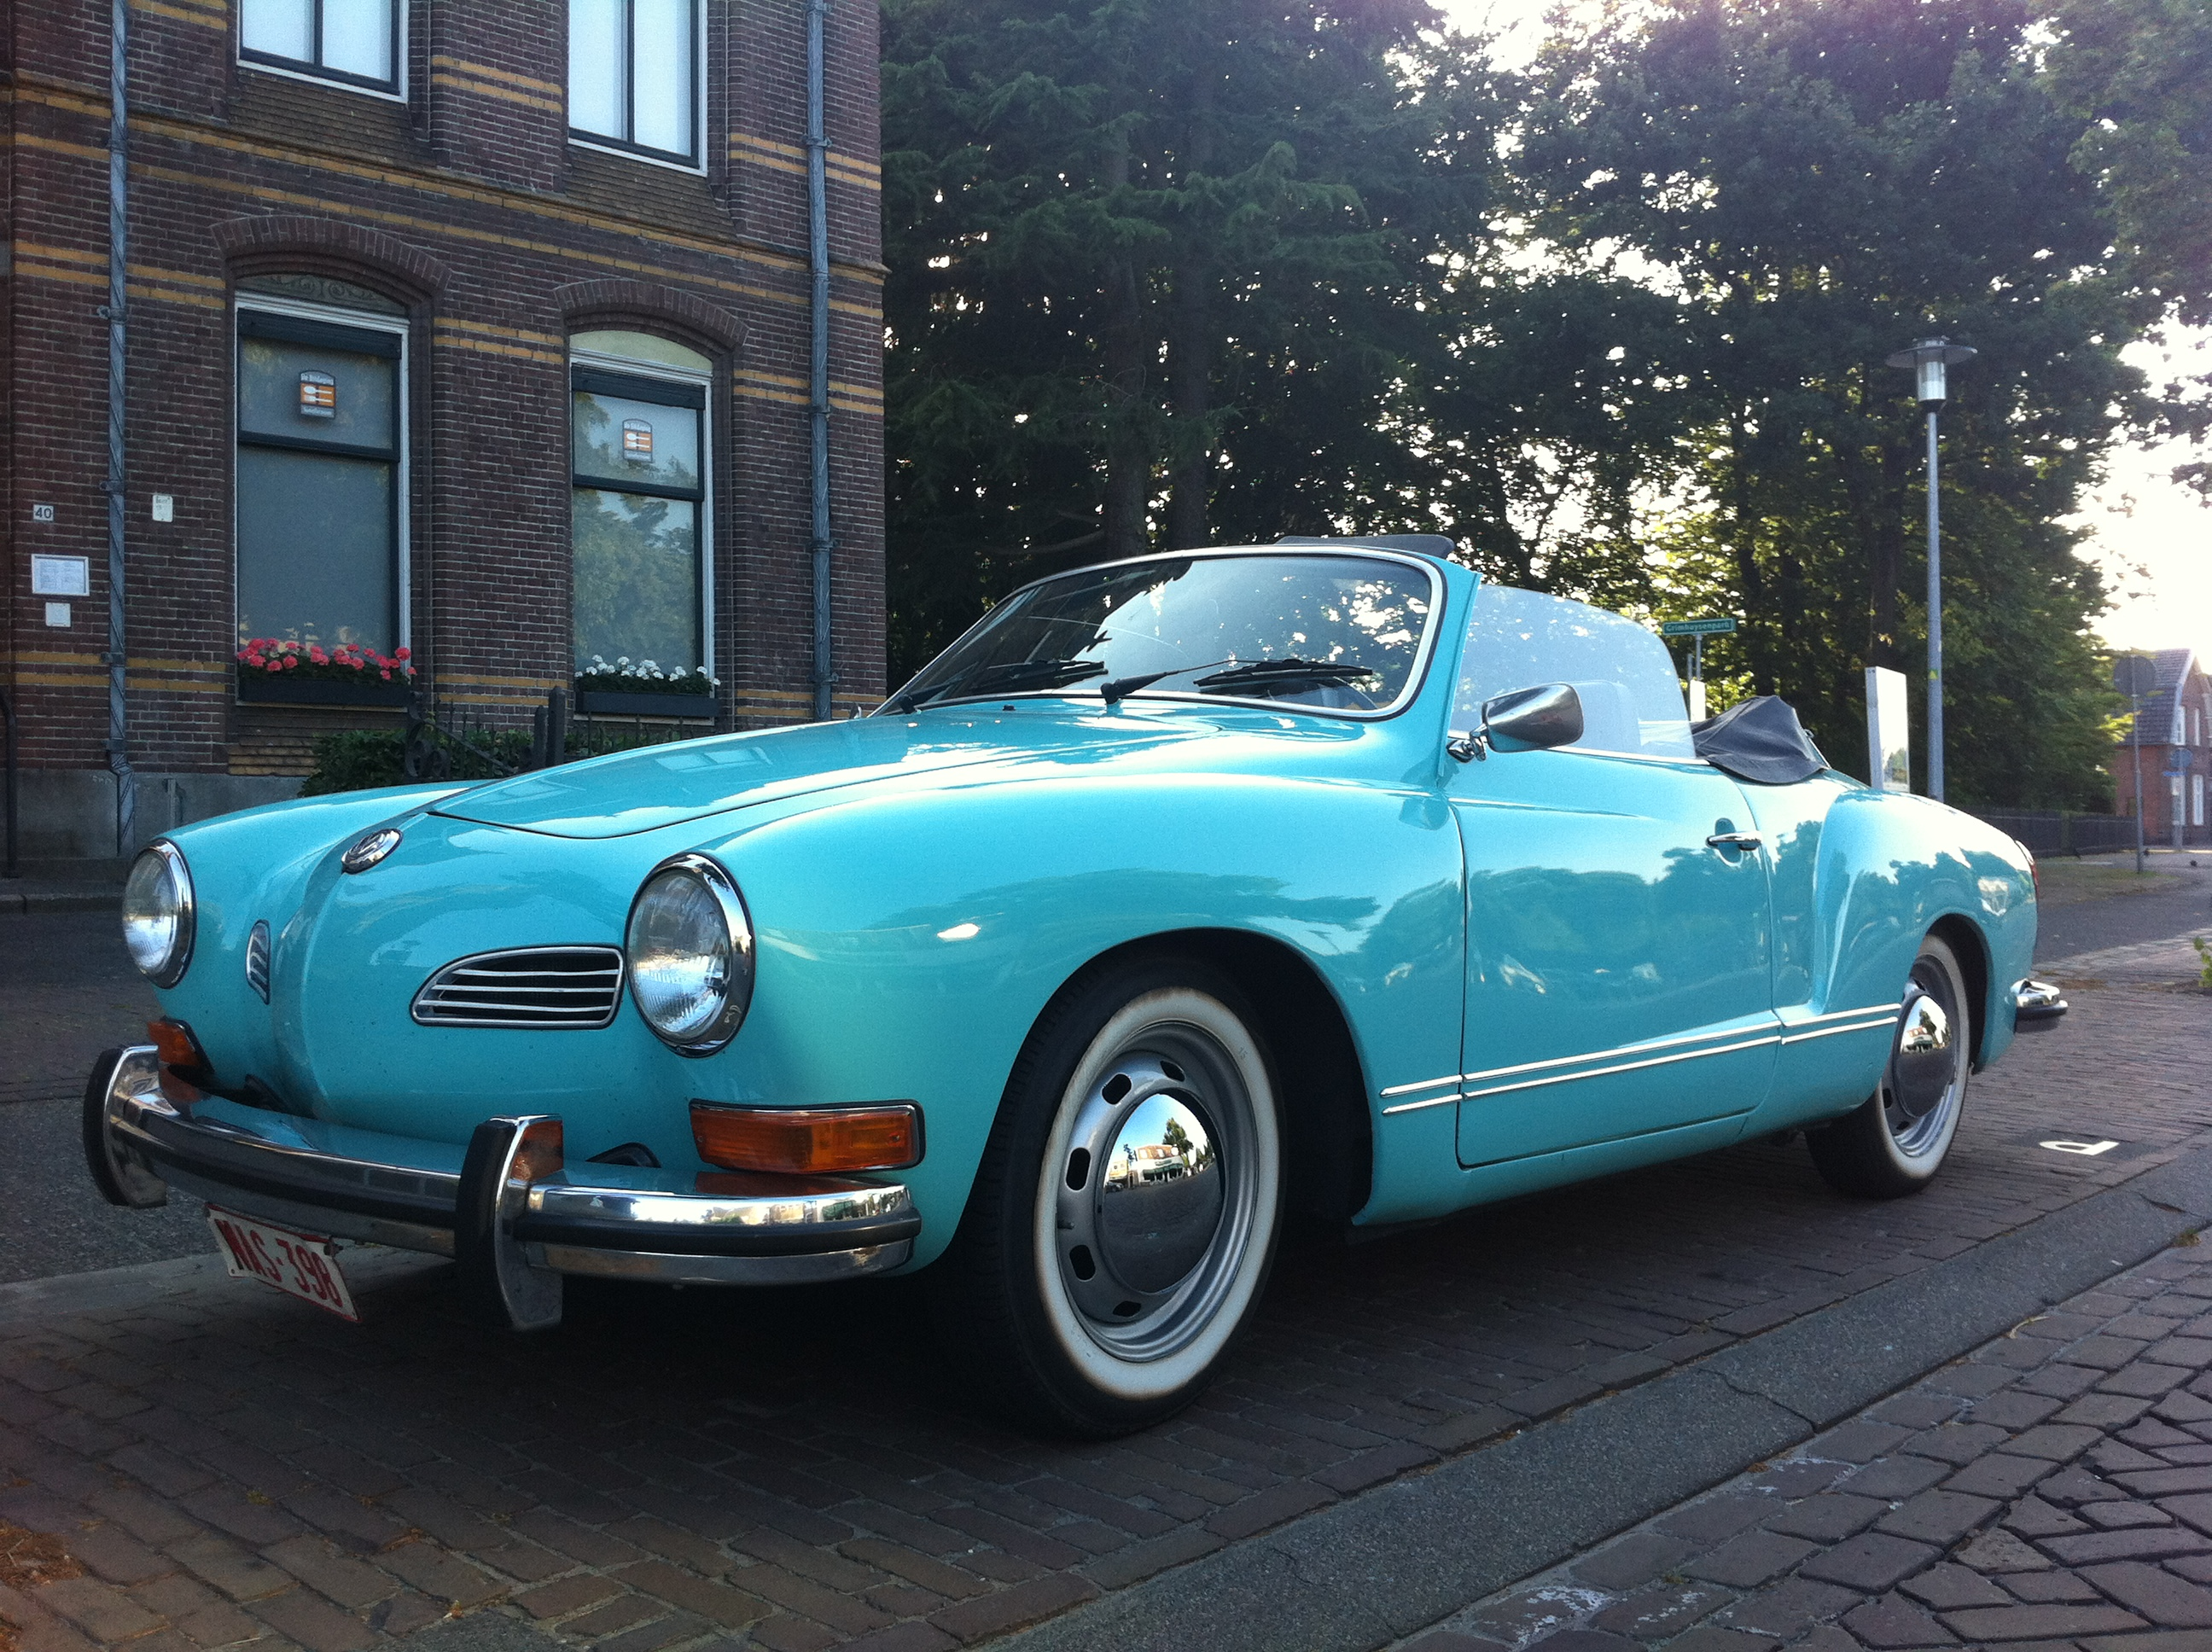 pics seen ghia next bouldin yellow for front real have karmann very volkswagen sale it nicer haven i blog pictures somewhere door this lovely in creek ut car since atx too quarter is t that fine couldn be but orange a